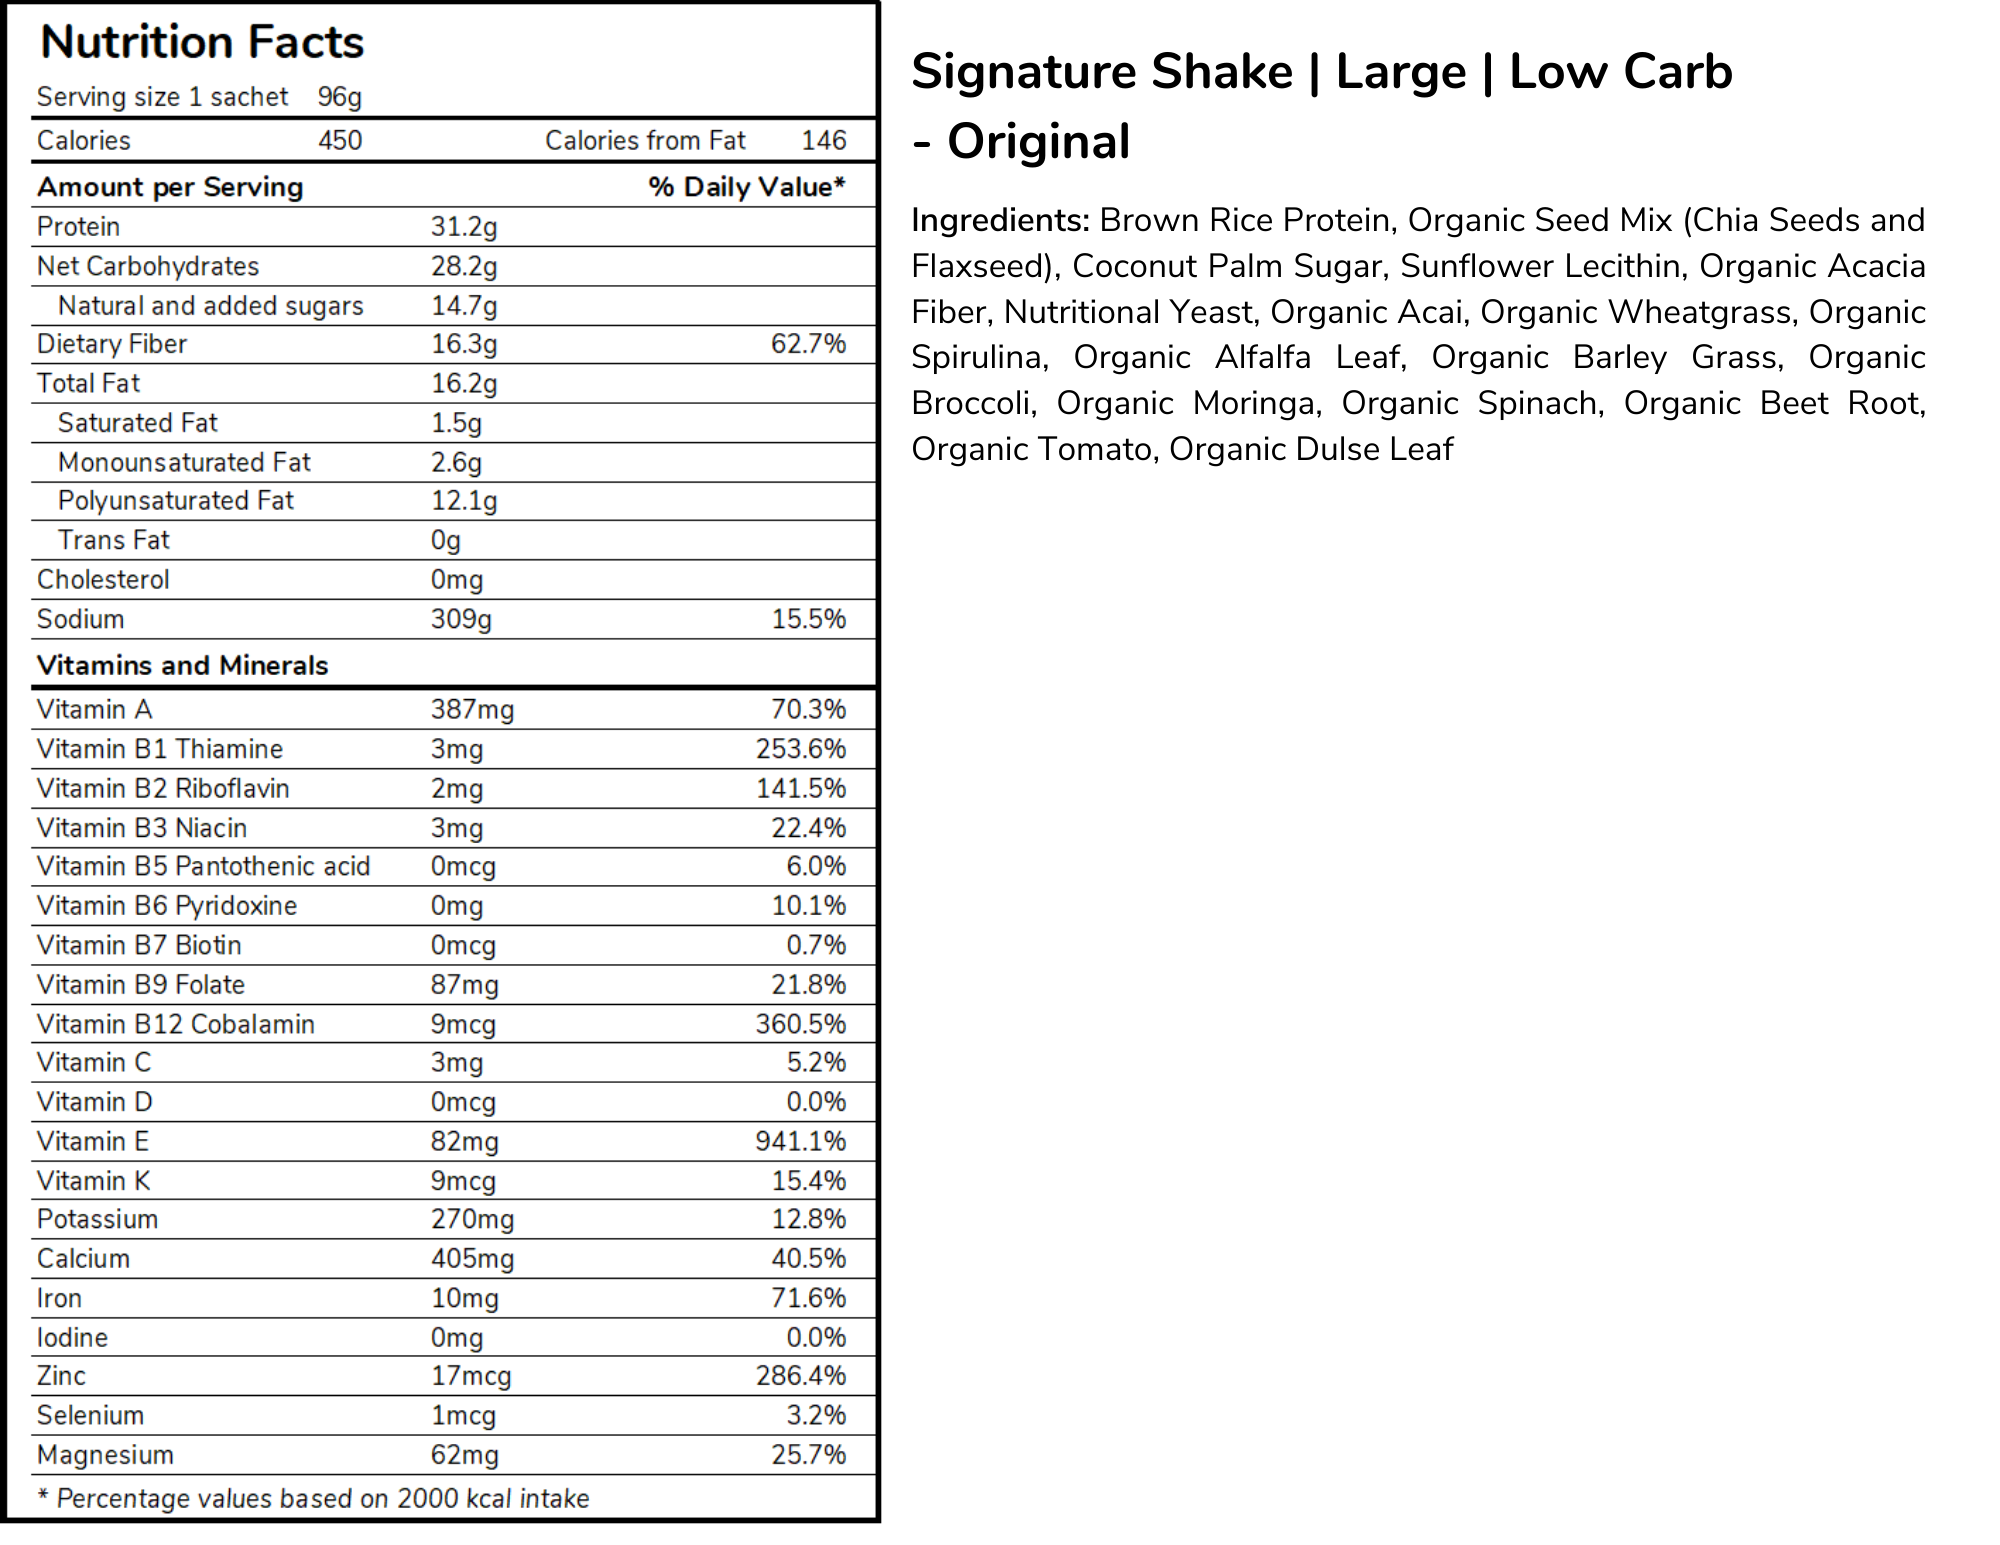 Signature meal replacement shakes large size low carb formula nutritional panel